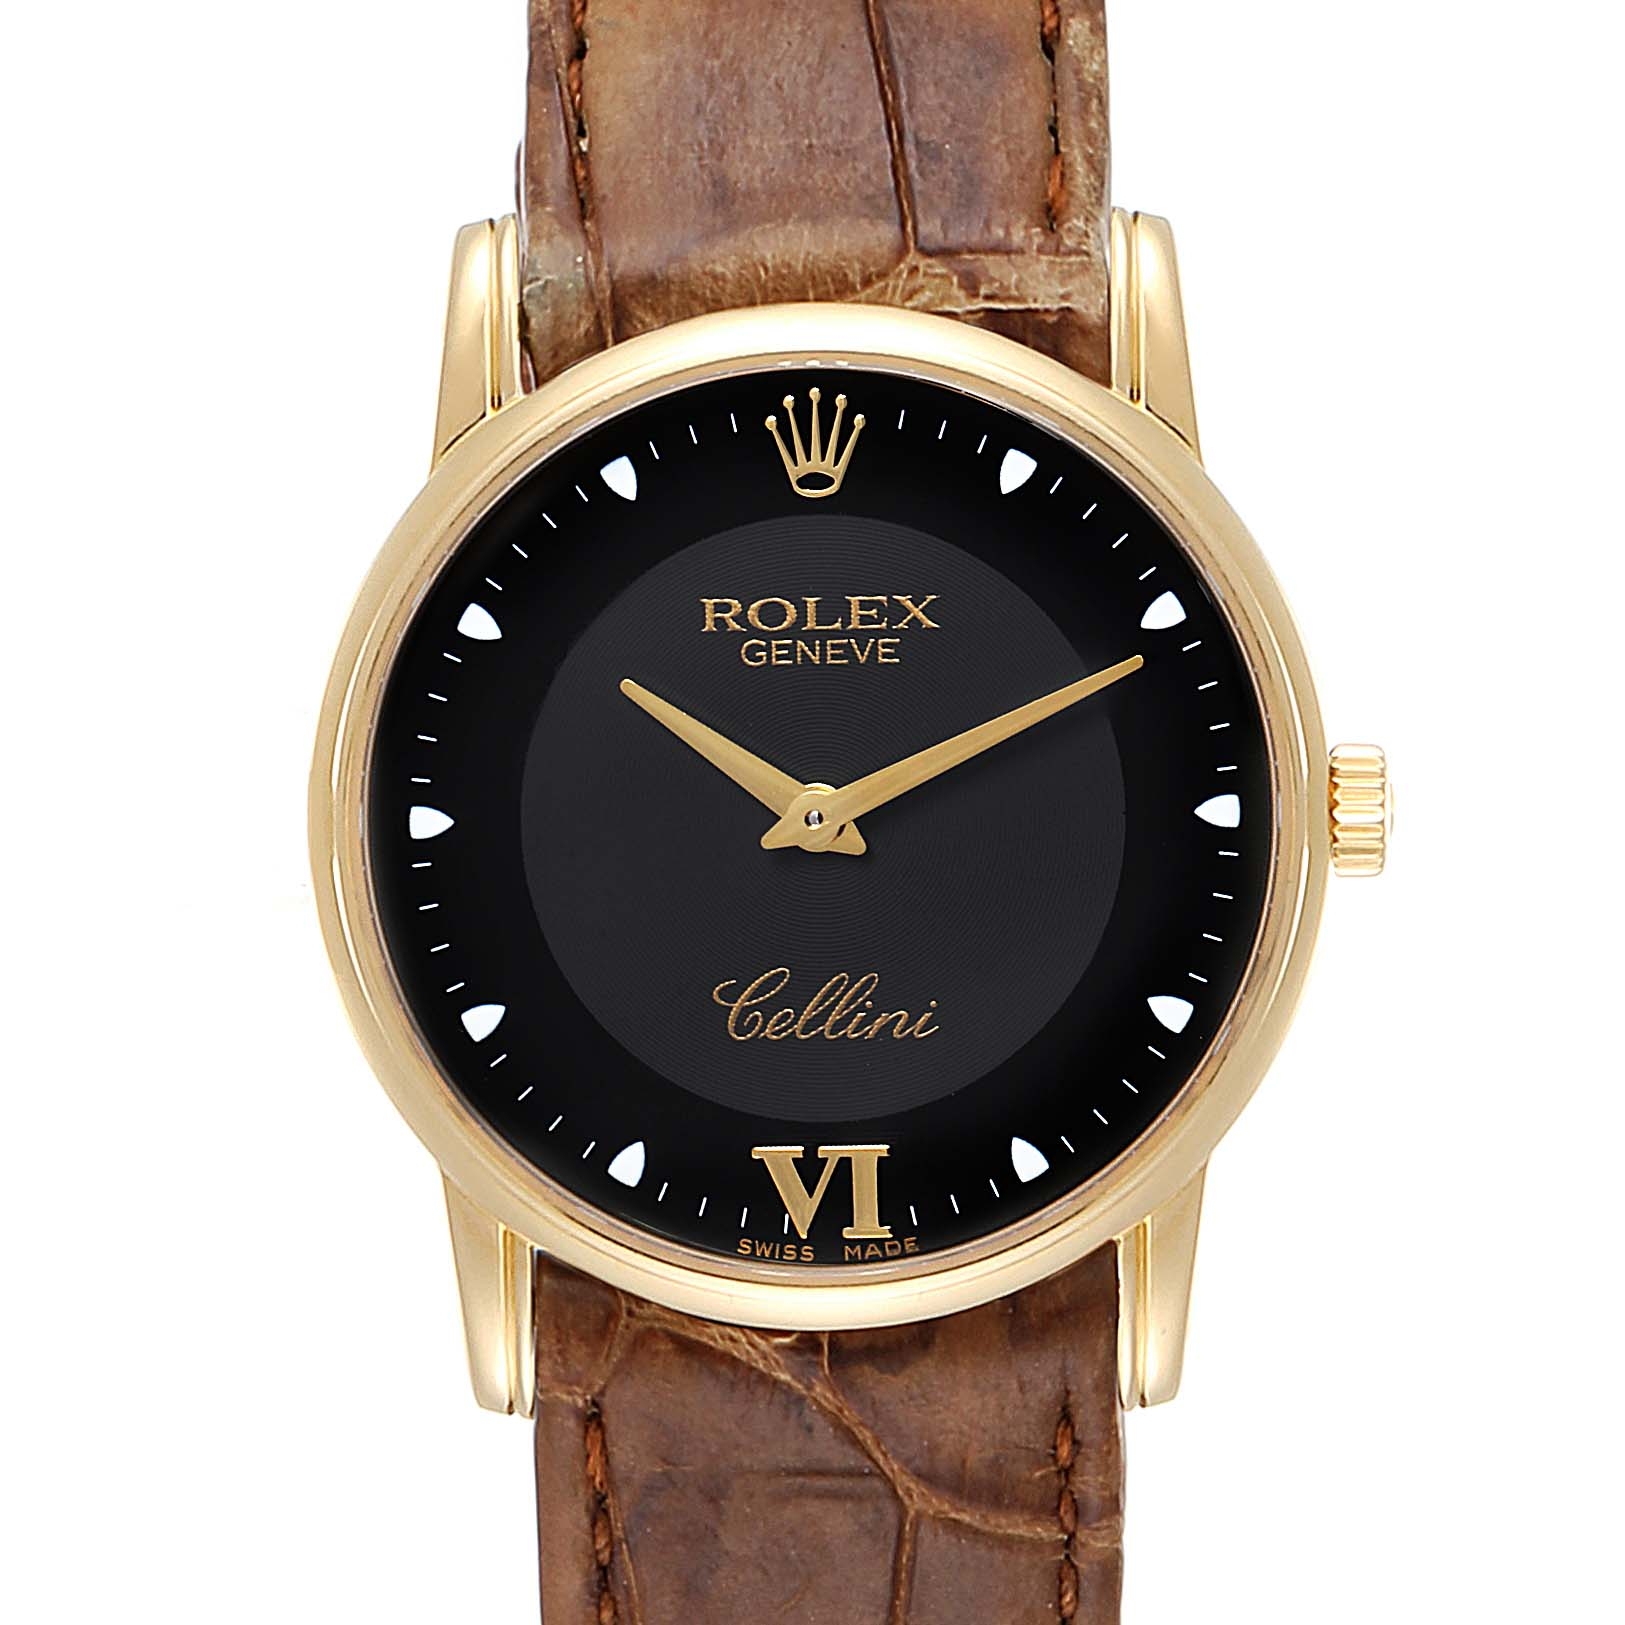 Photo of Rolex Cellini Classic Yellow Gold Black Dial Watch 5116 Box Papers